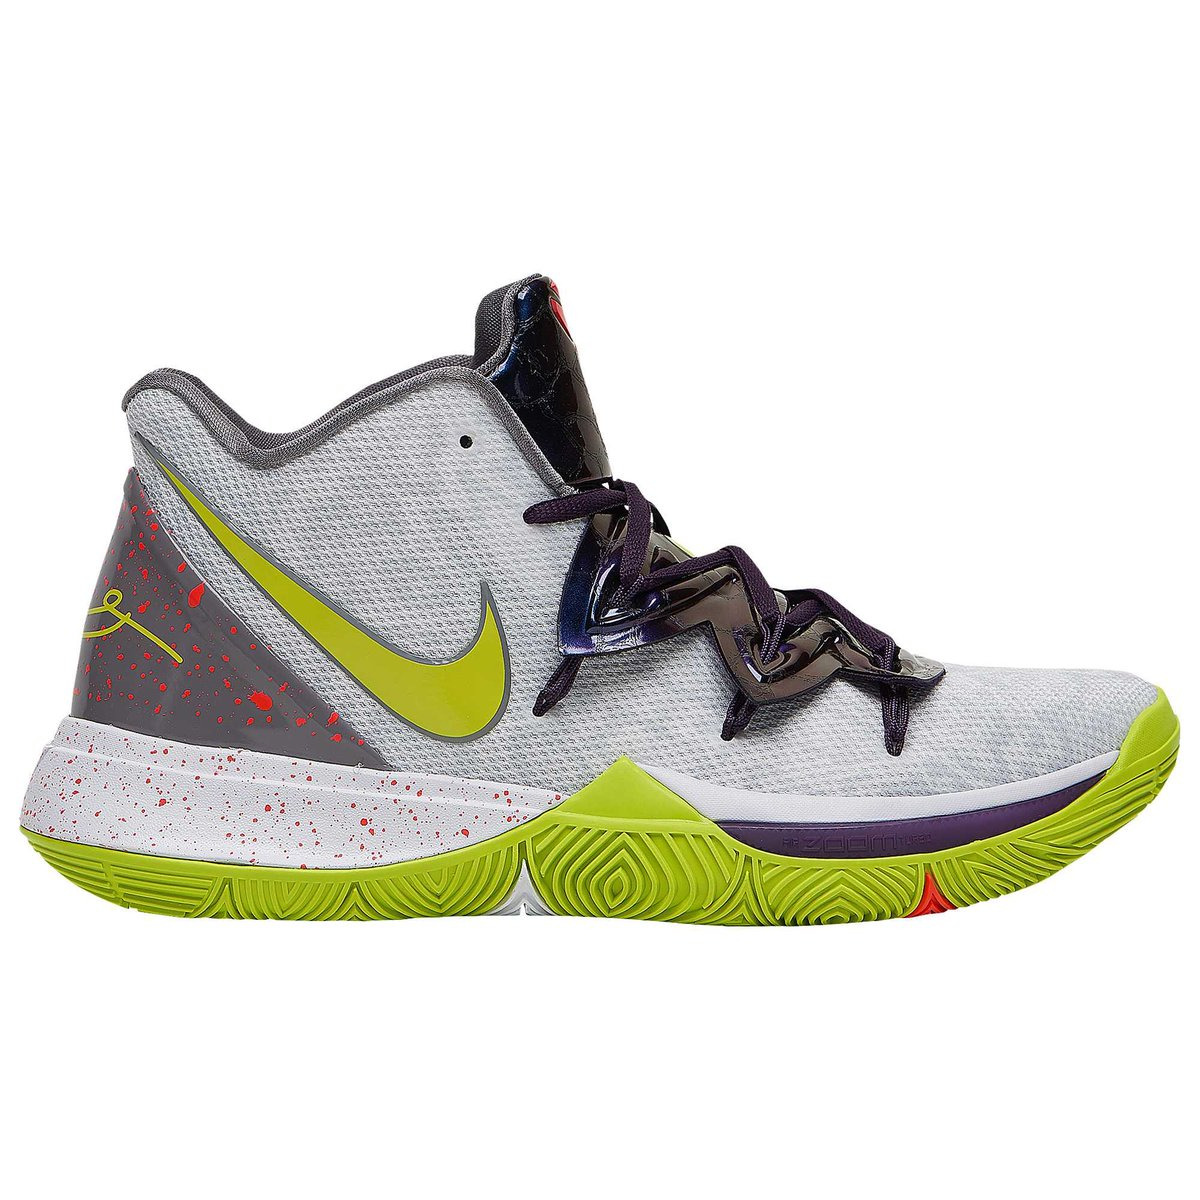 meet 4e4fb 4a28d the nike kyrie 5 mamba mentality borrows cues from the chaos kobe 5 release  set for